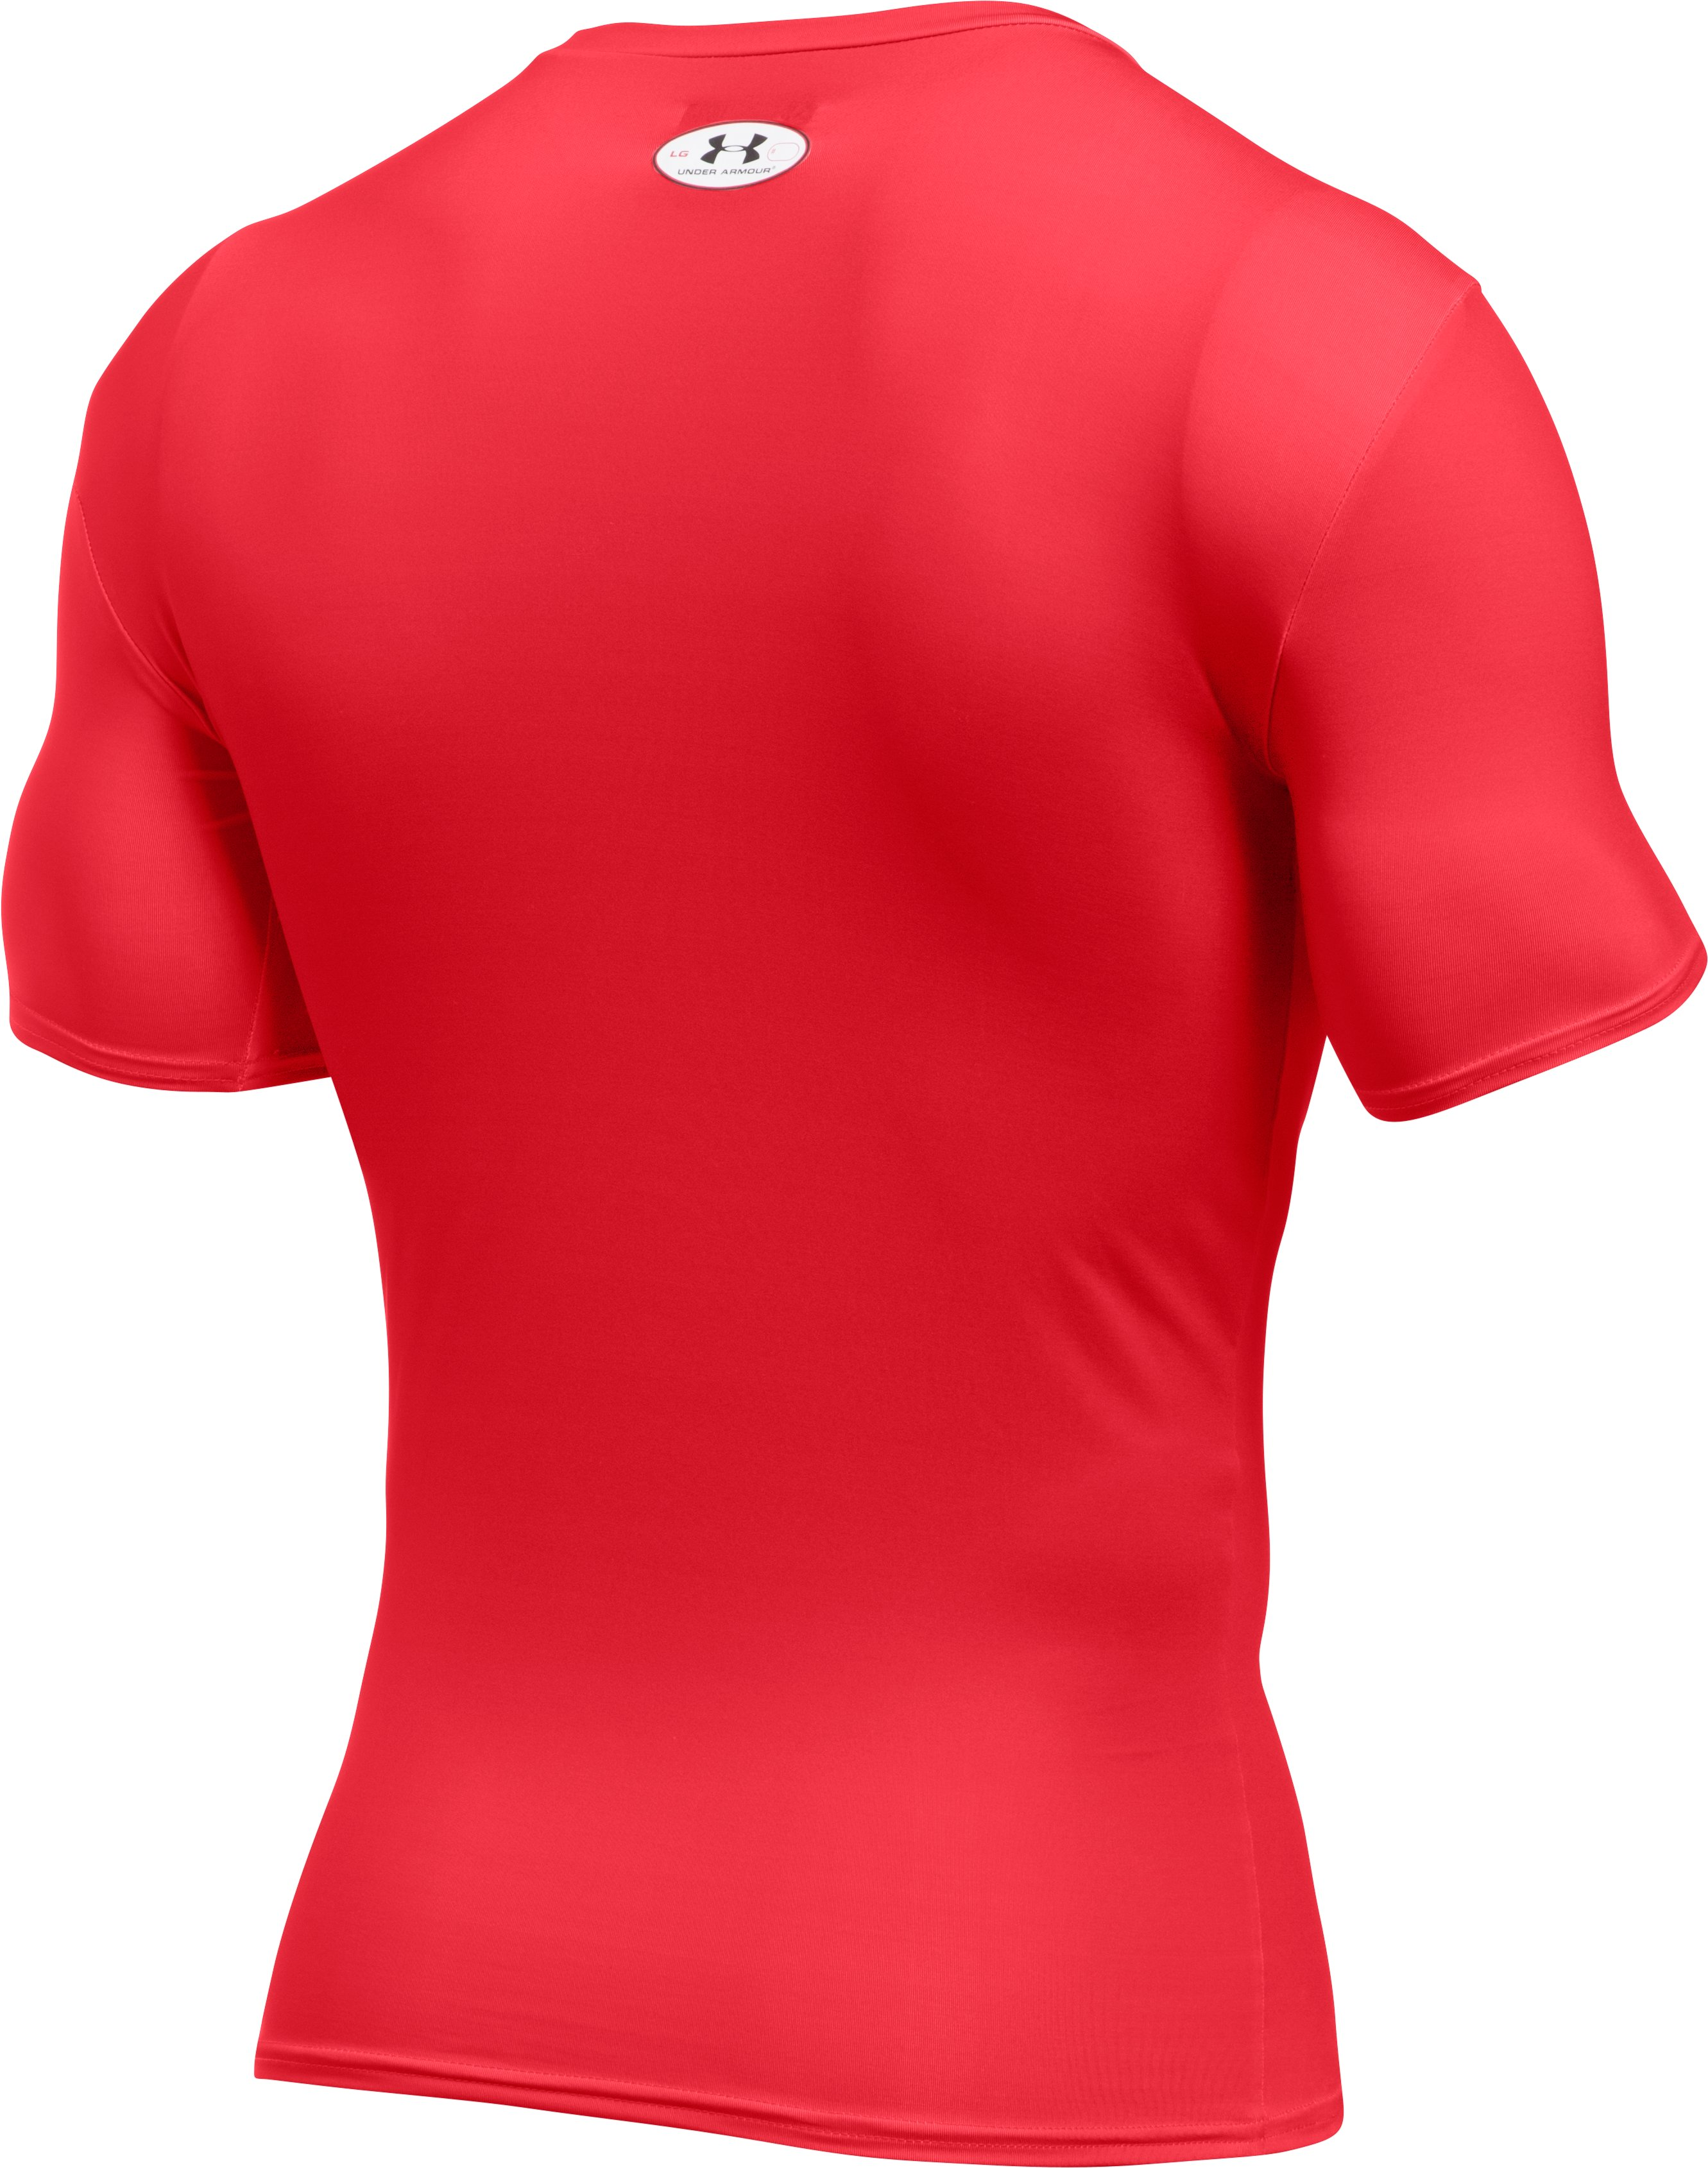 Men's Maryland Throwback Baselayer, Red, undefined